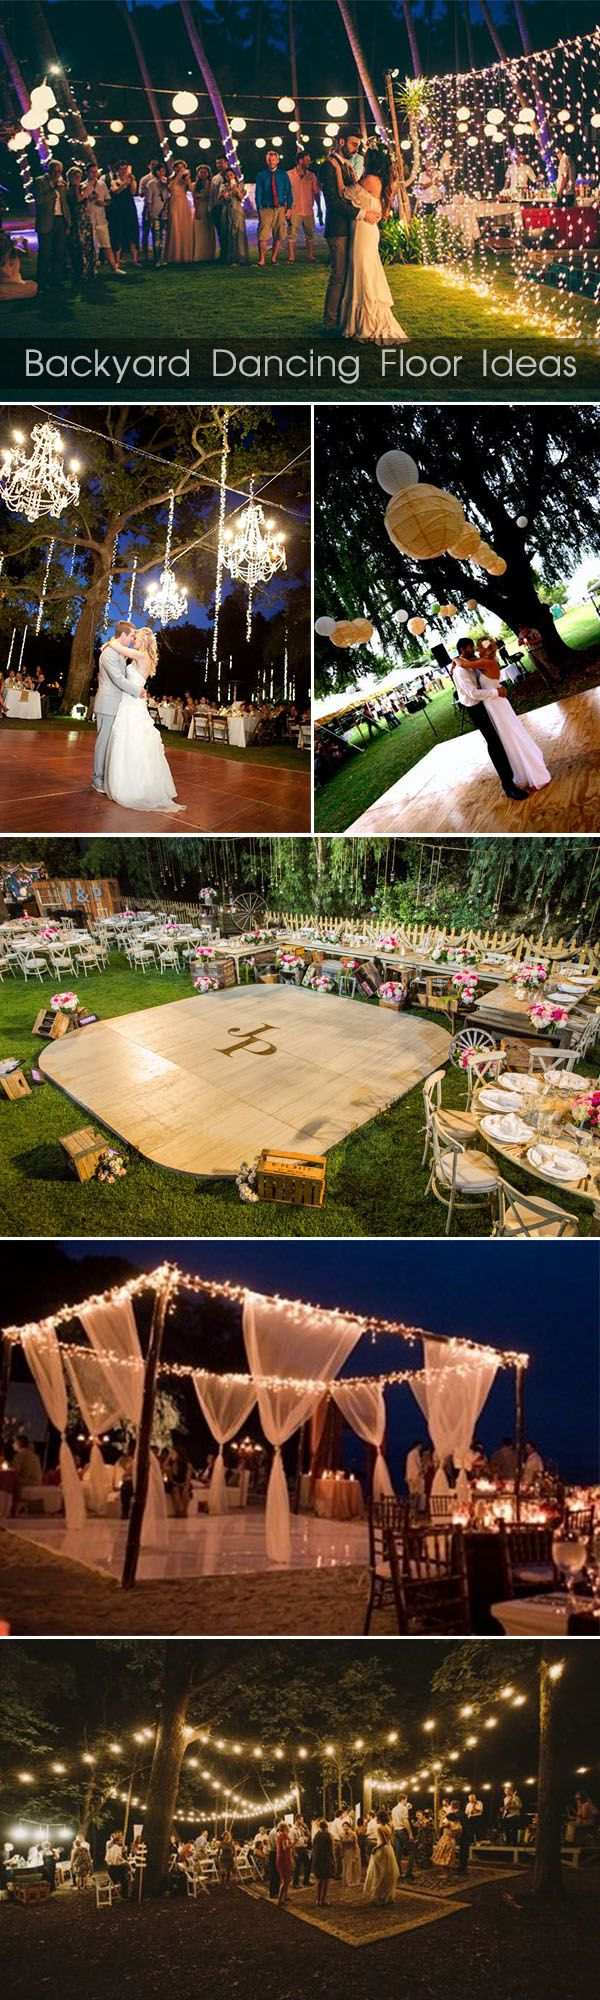 30 Sweet Ideas For Intimate Backyard Outdoor Weddings Party pertaining to Ideas For Backyard Wedding